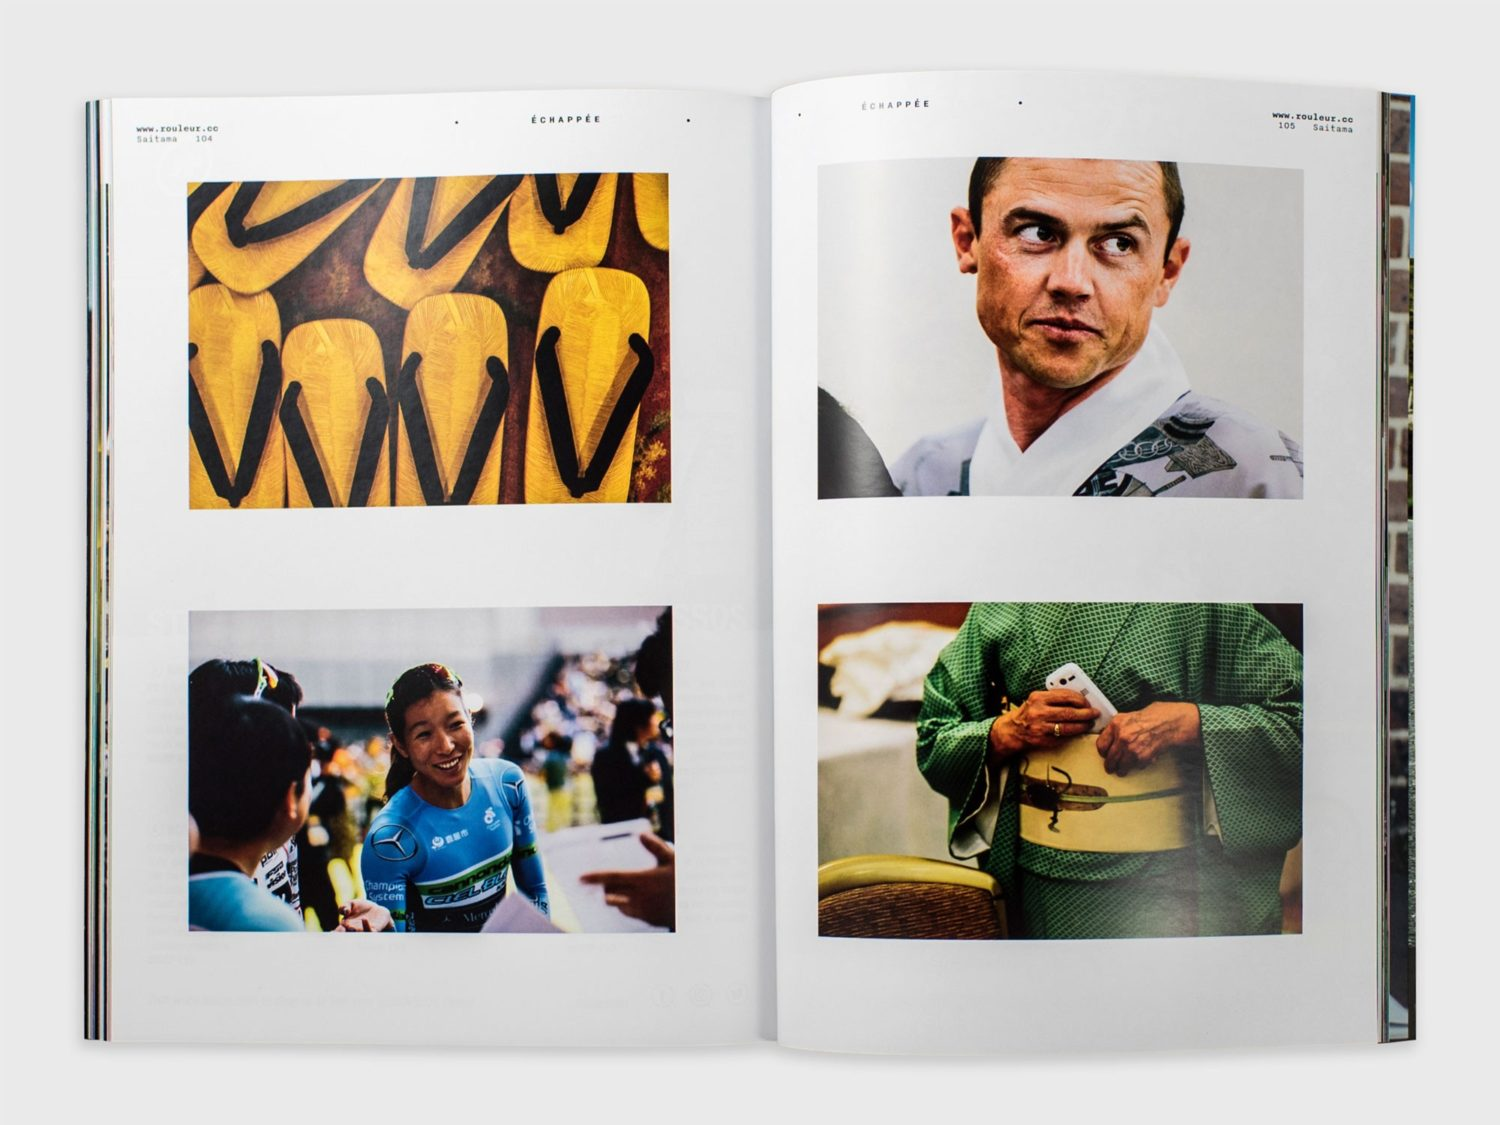 rouleur magazine issue 67